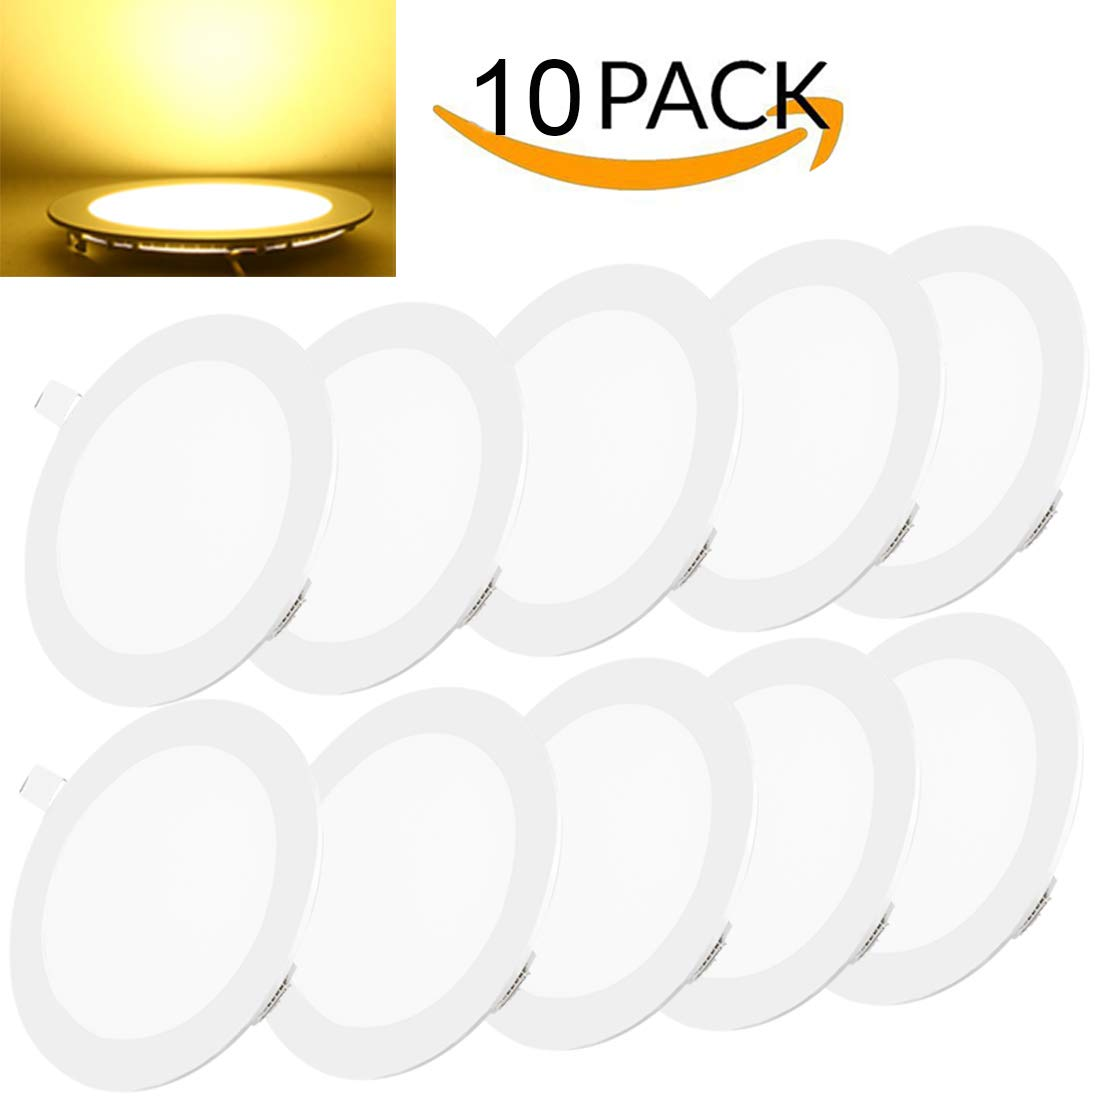 10pack LED Recessed Lighting Panels Light Ceiling 3W 3000k 180LM Ultra Slim Flat Recessed Light Fixtures for Bathroom Kitchen Dining Room Corridor Conference Room Office Gazebo Office Store